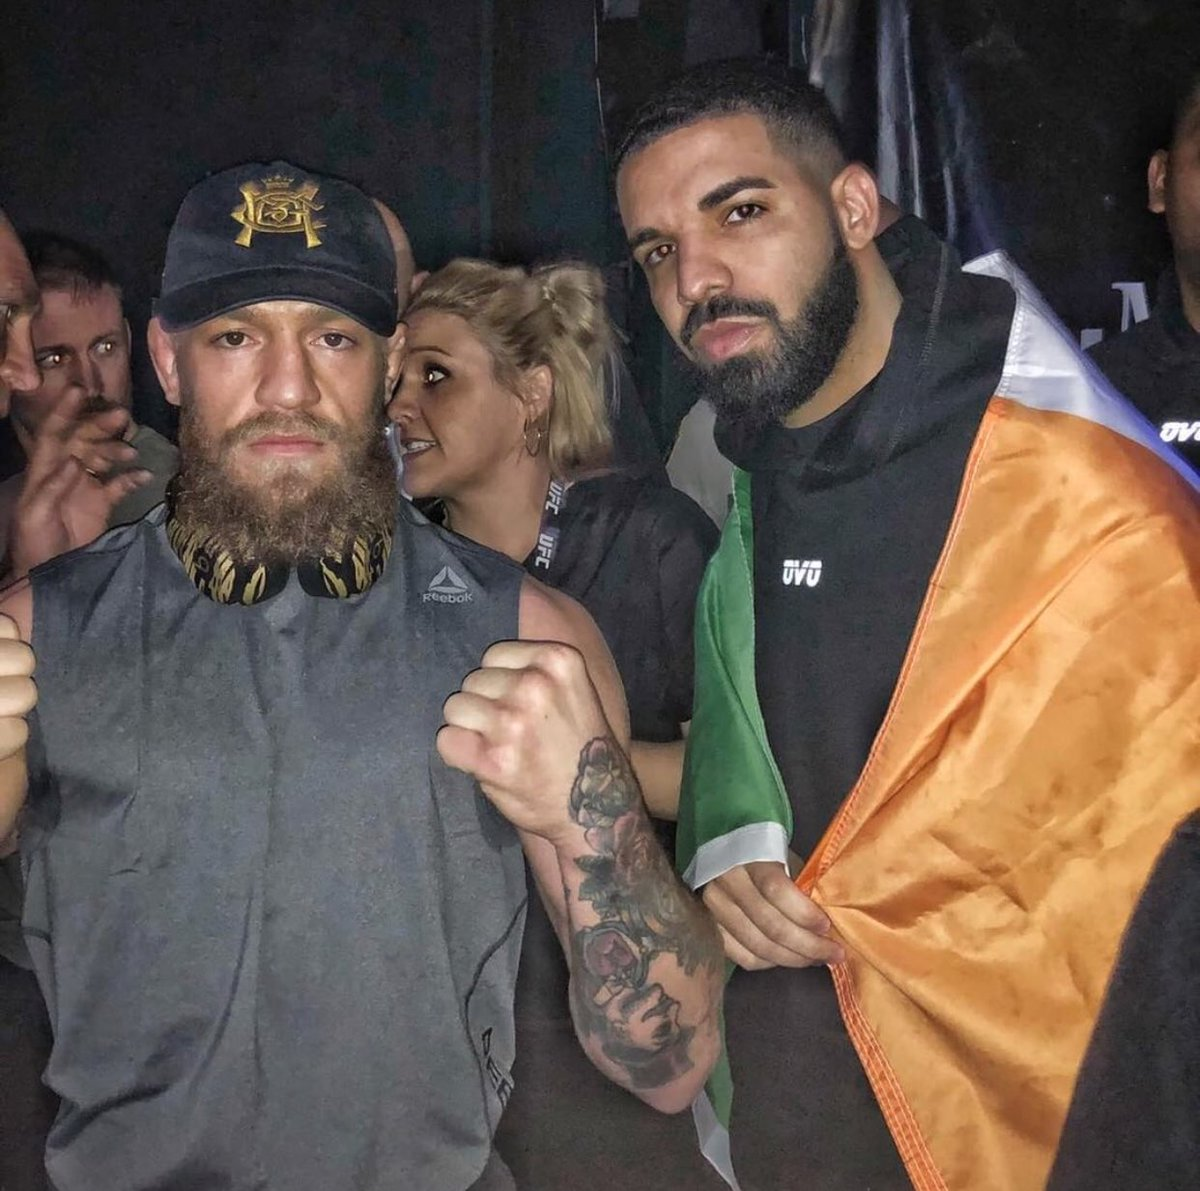 The 6 God and The 12 animal! https://t.co/S1KfNlwam3